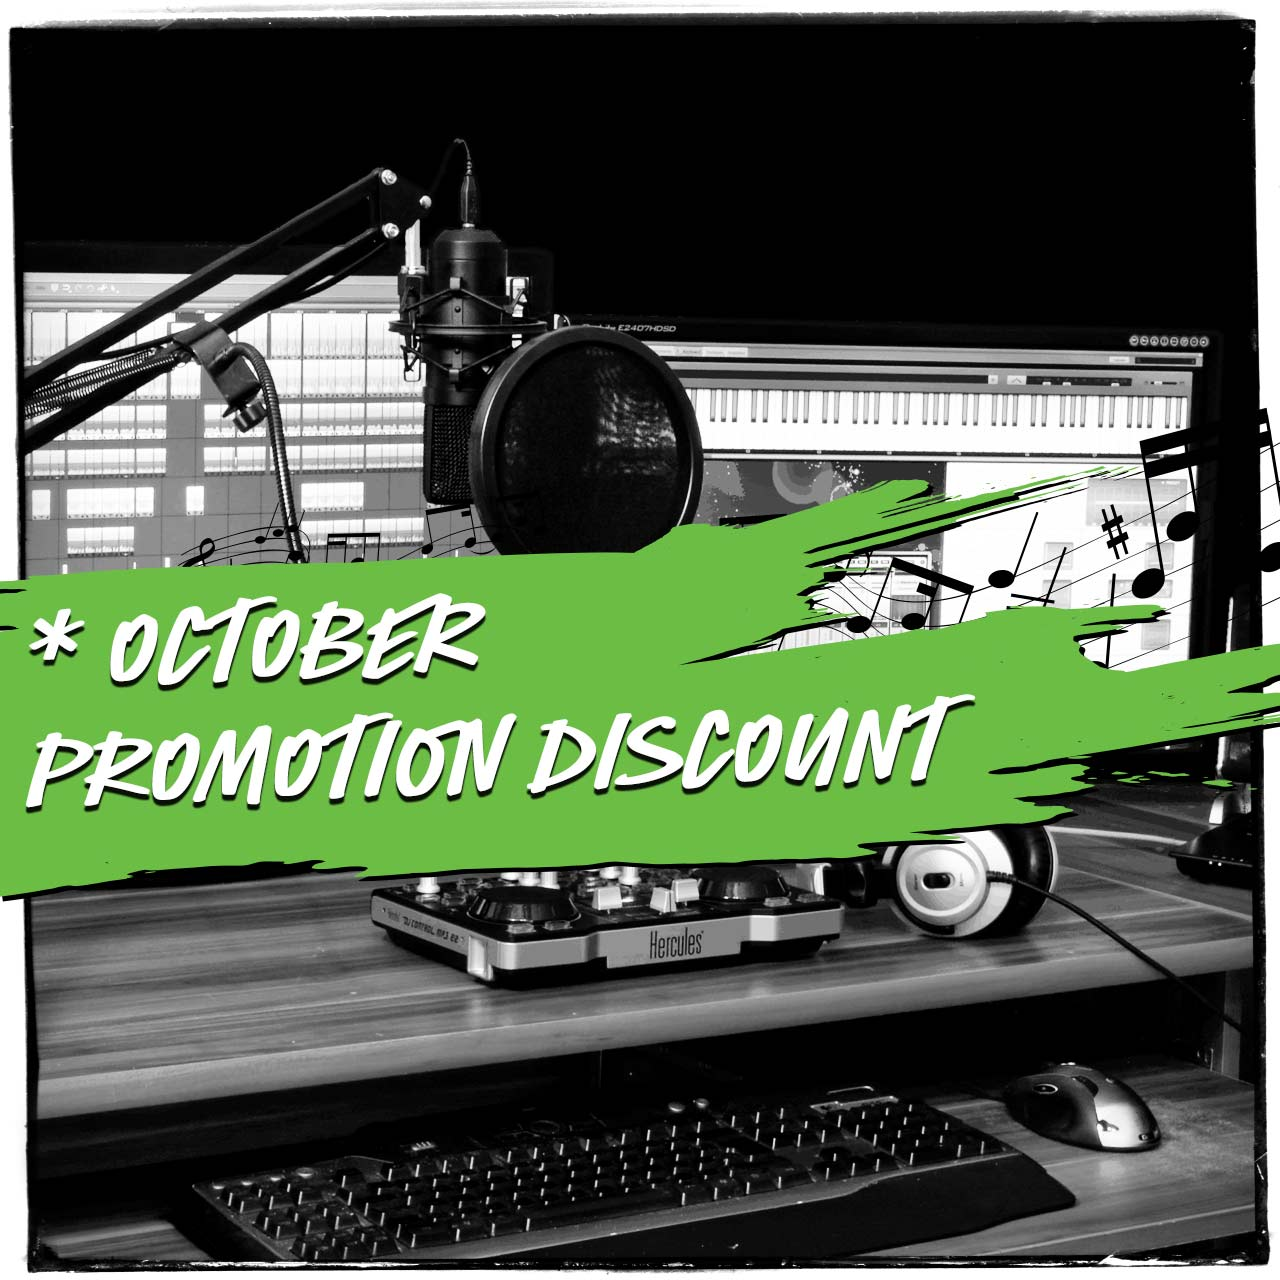 October Discount Promotion